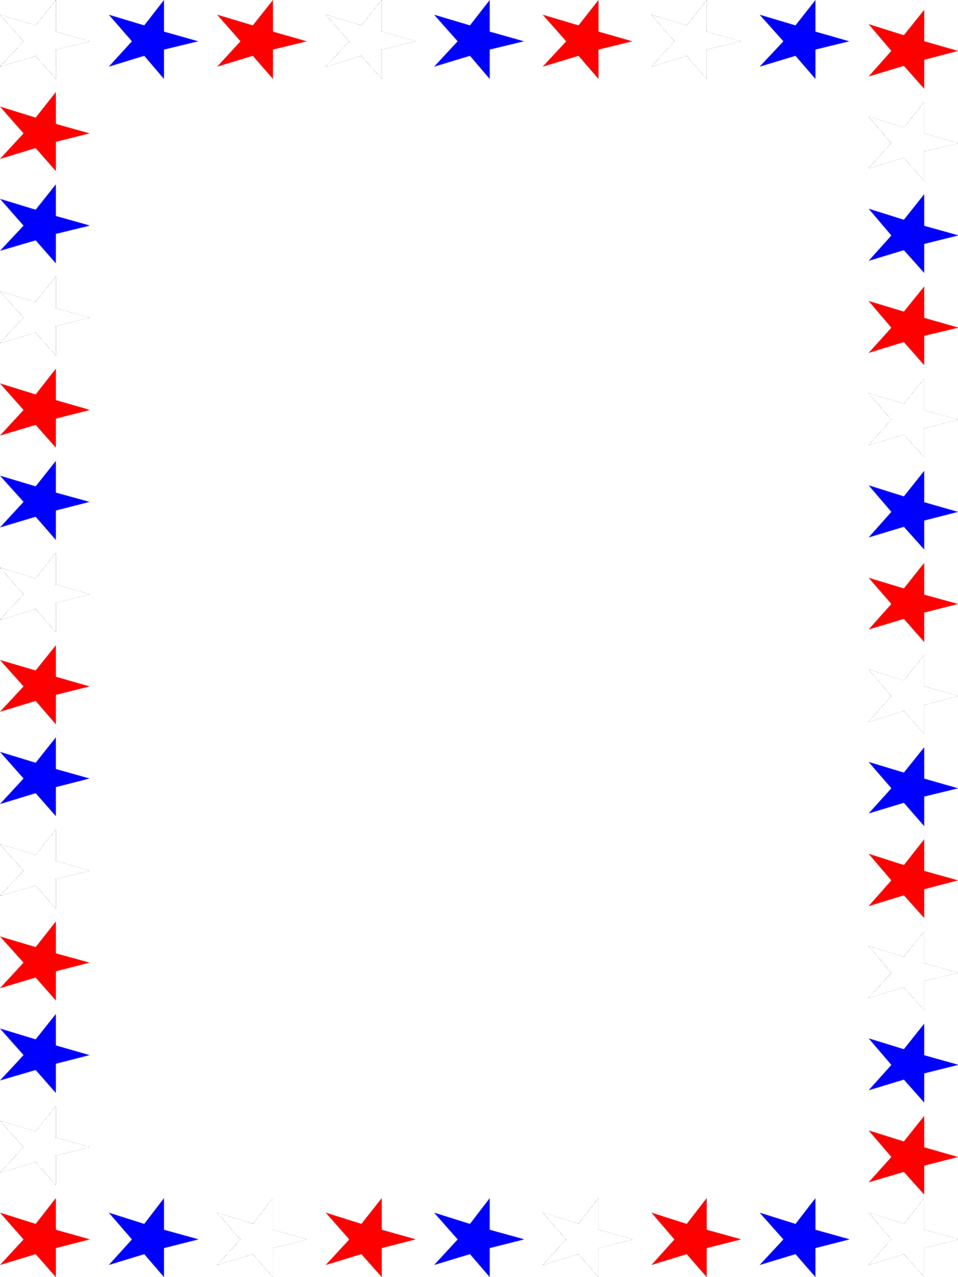 Illustration of a blank frame border of red white and blue stars : Free Stock Photo